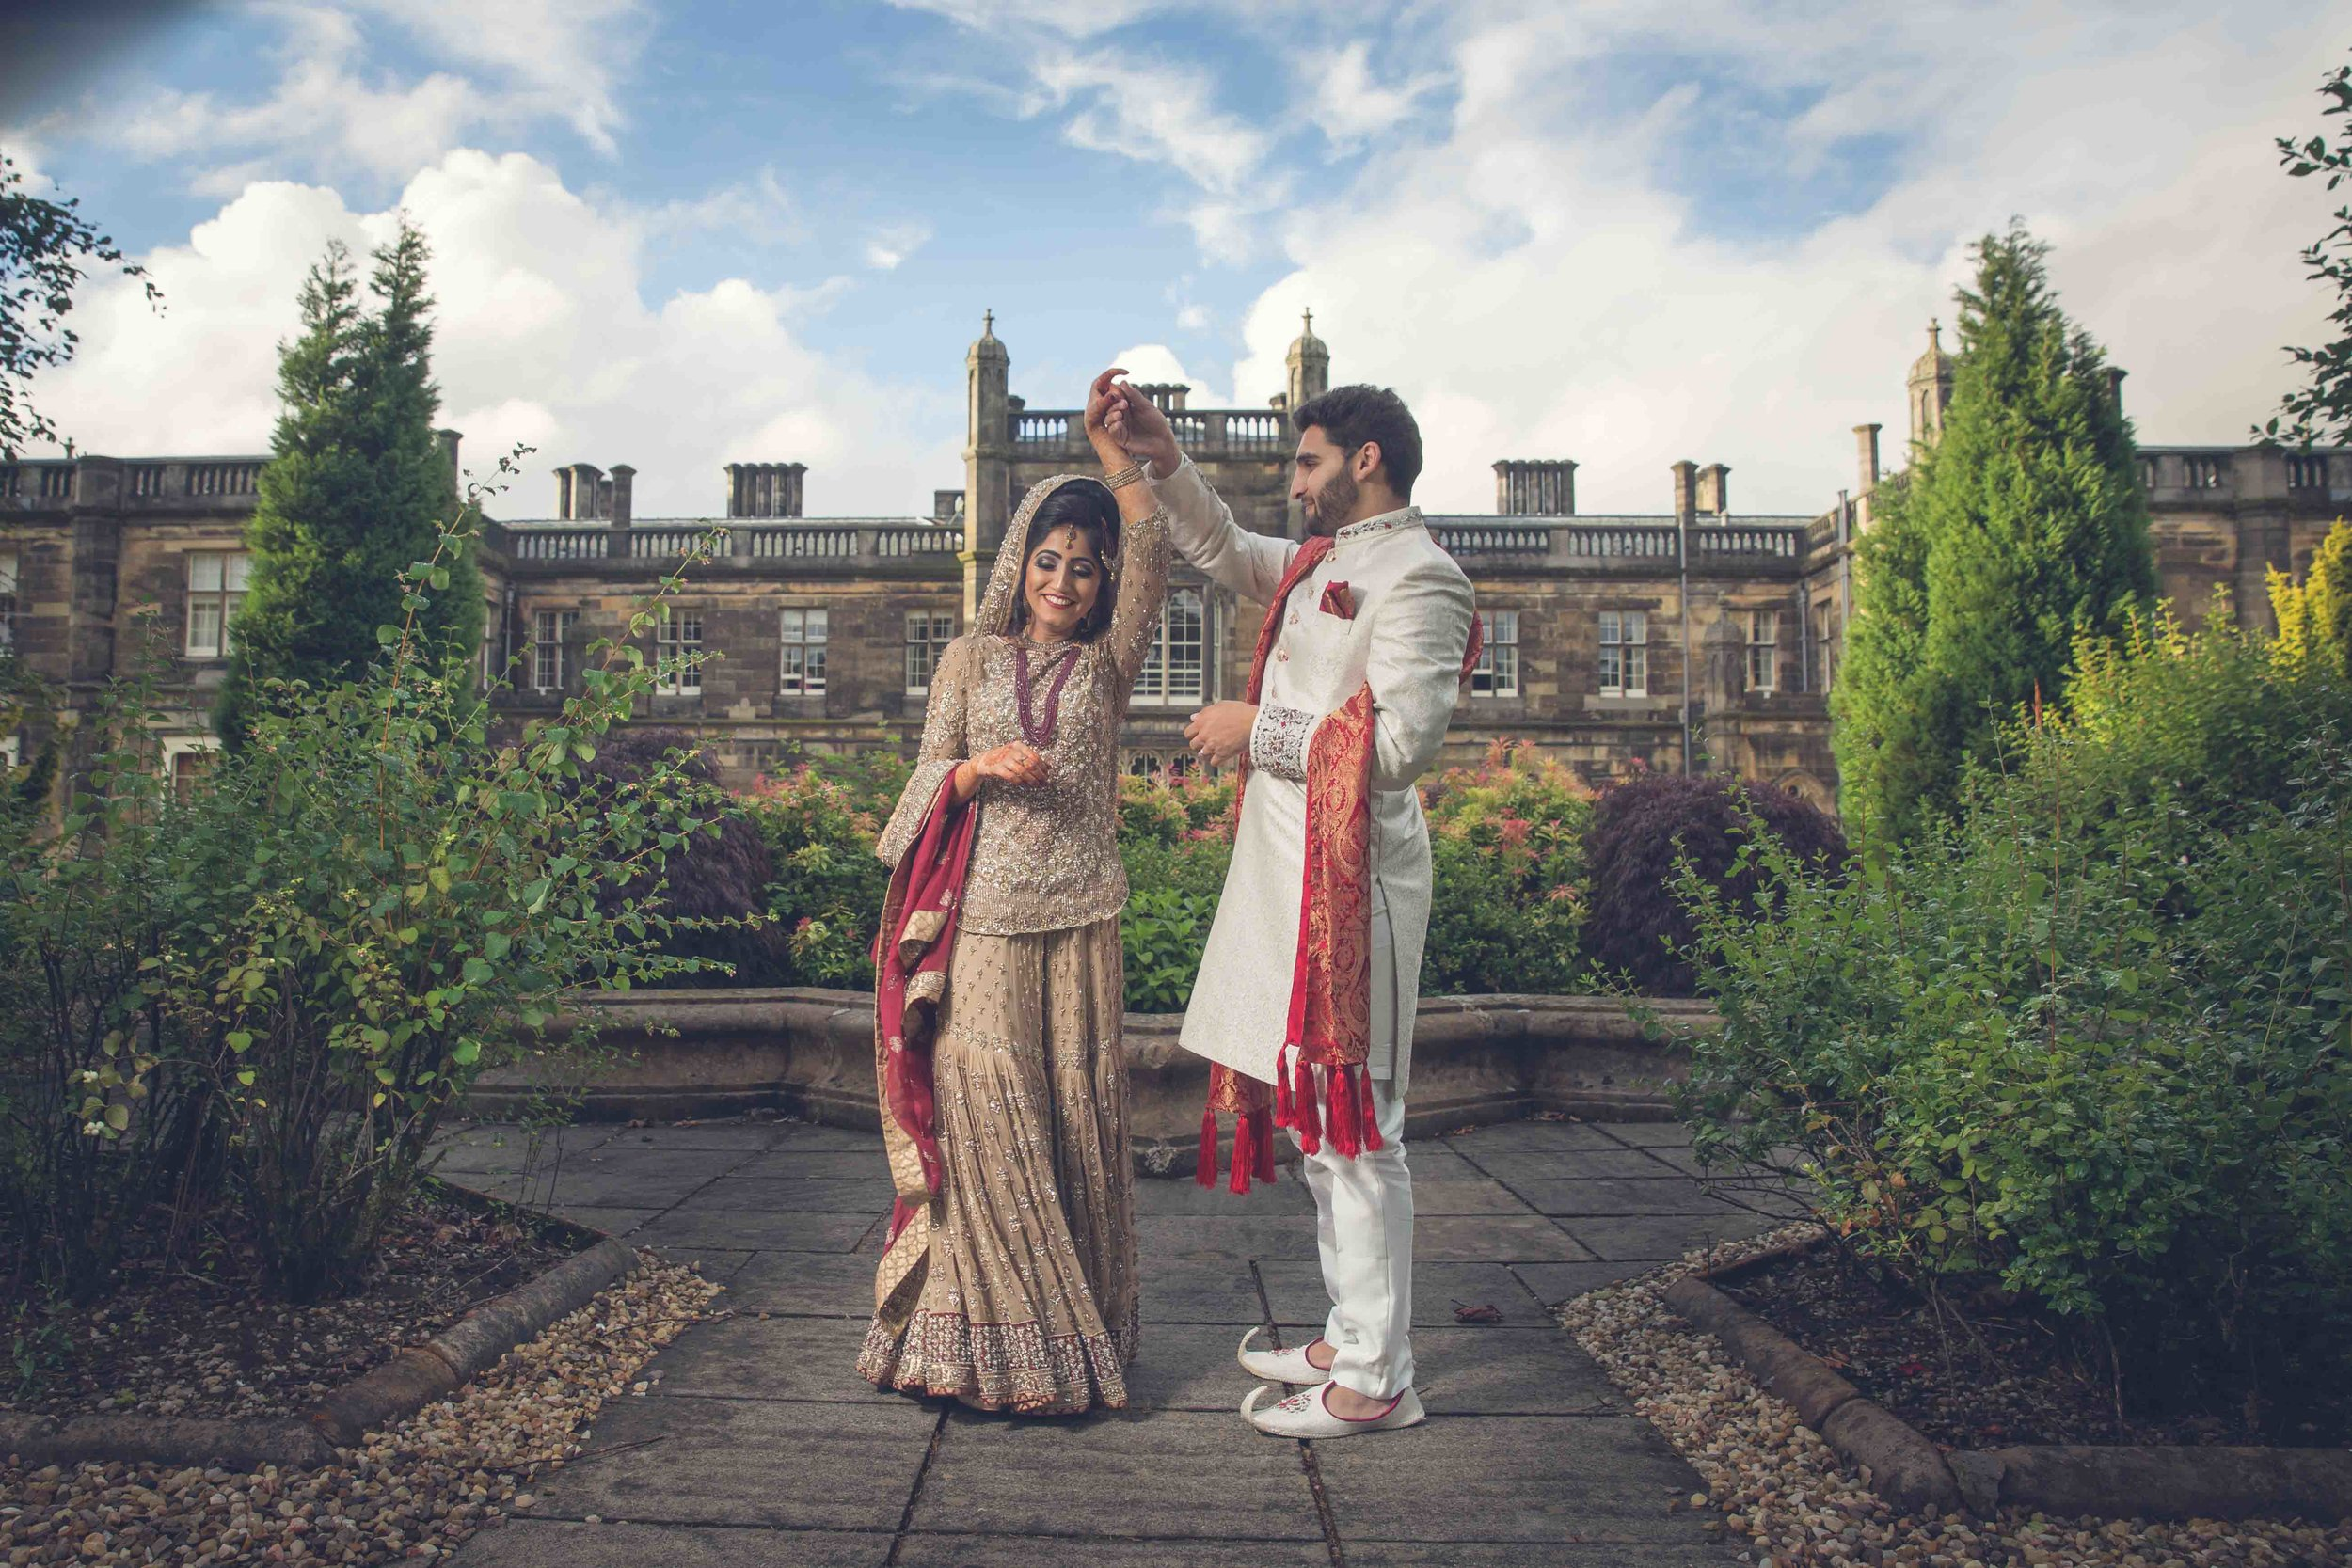 Opu Sultan Photography Asian wedding photography scotland edinburgh glasgow manchester birmingham london.jpg